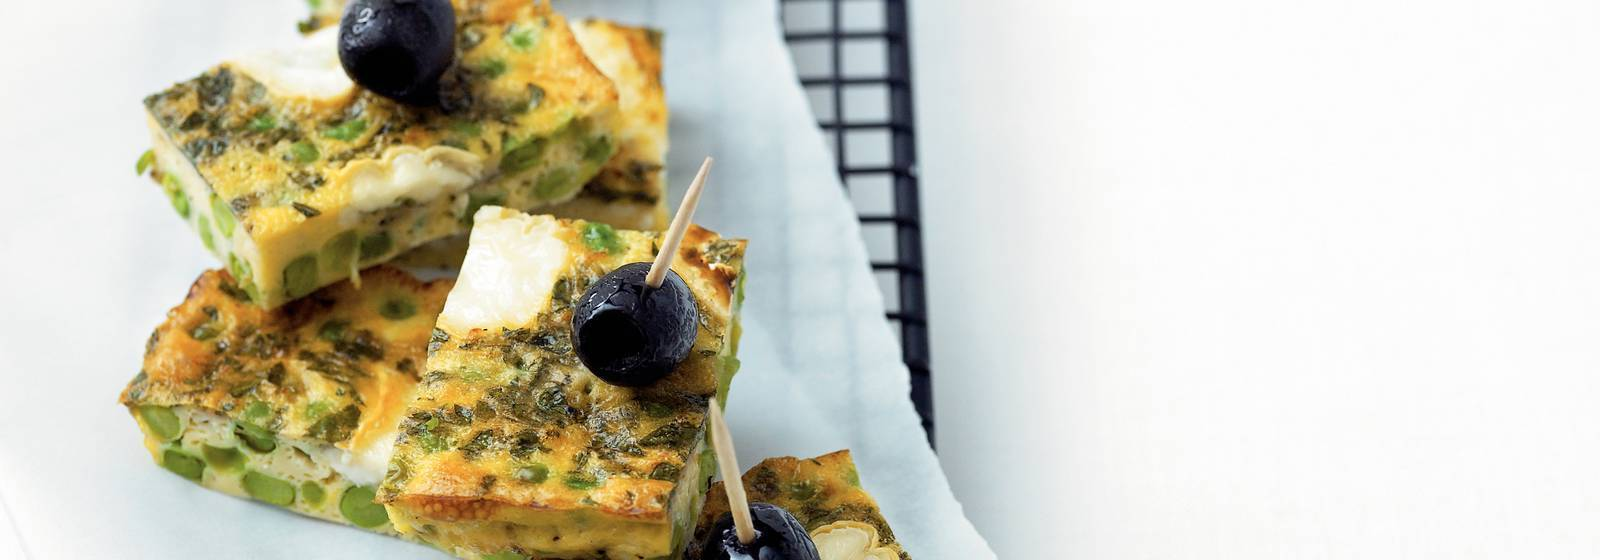 Frittata with peas and goat's cheese